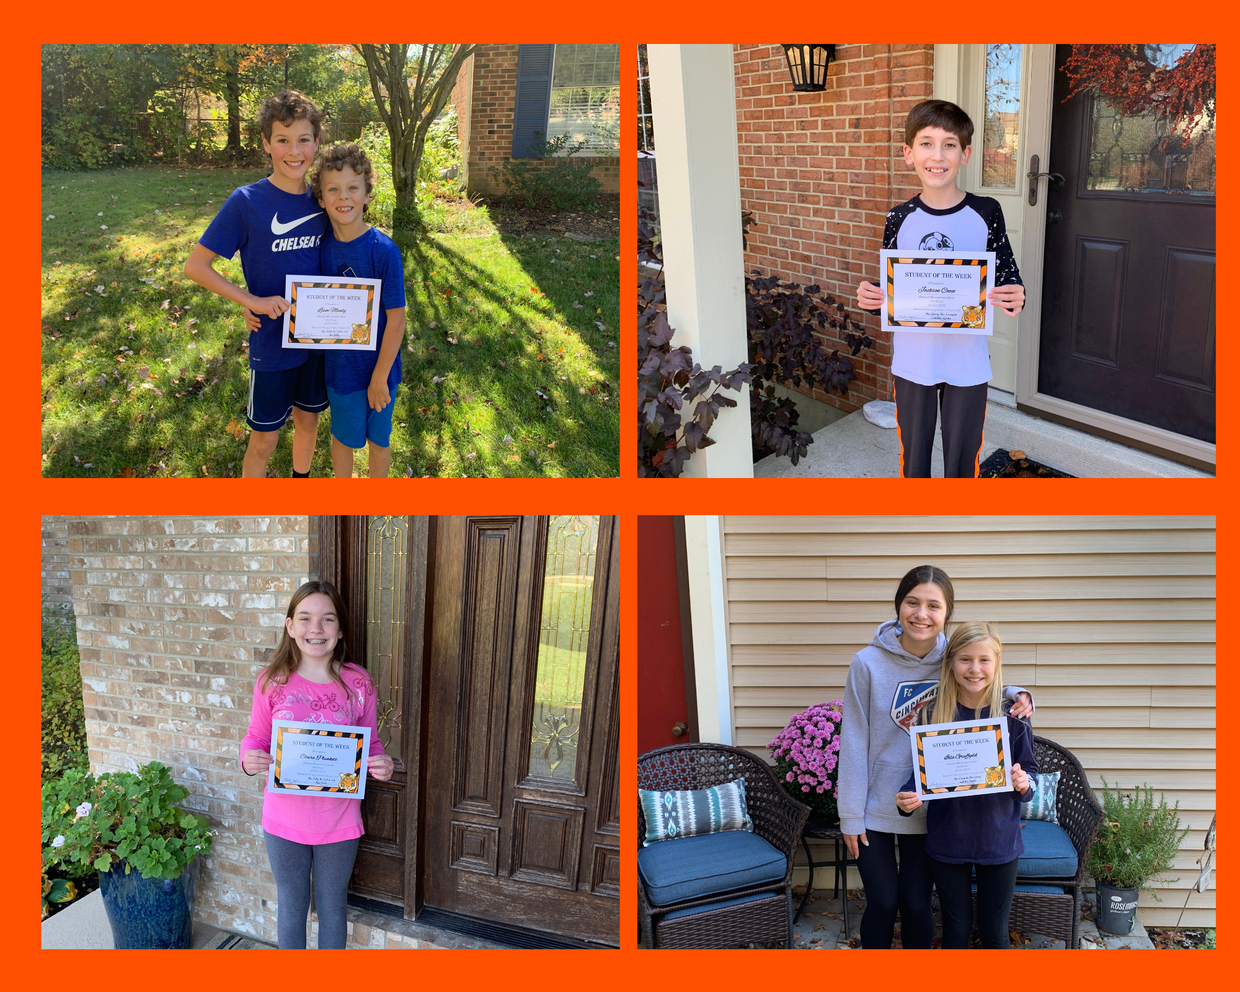 Loveland Intermediate School Remote Students of the Week with certificates